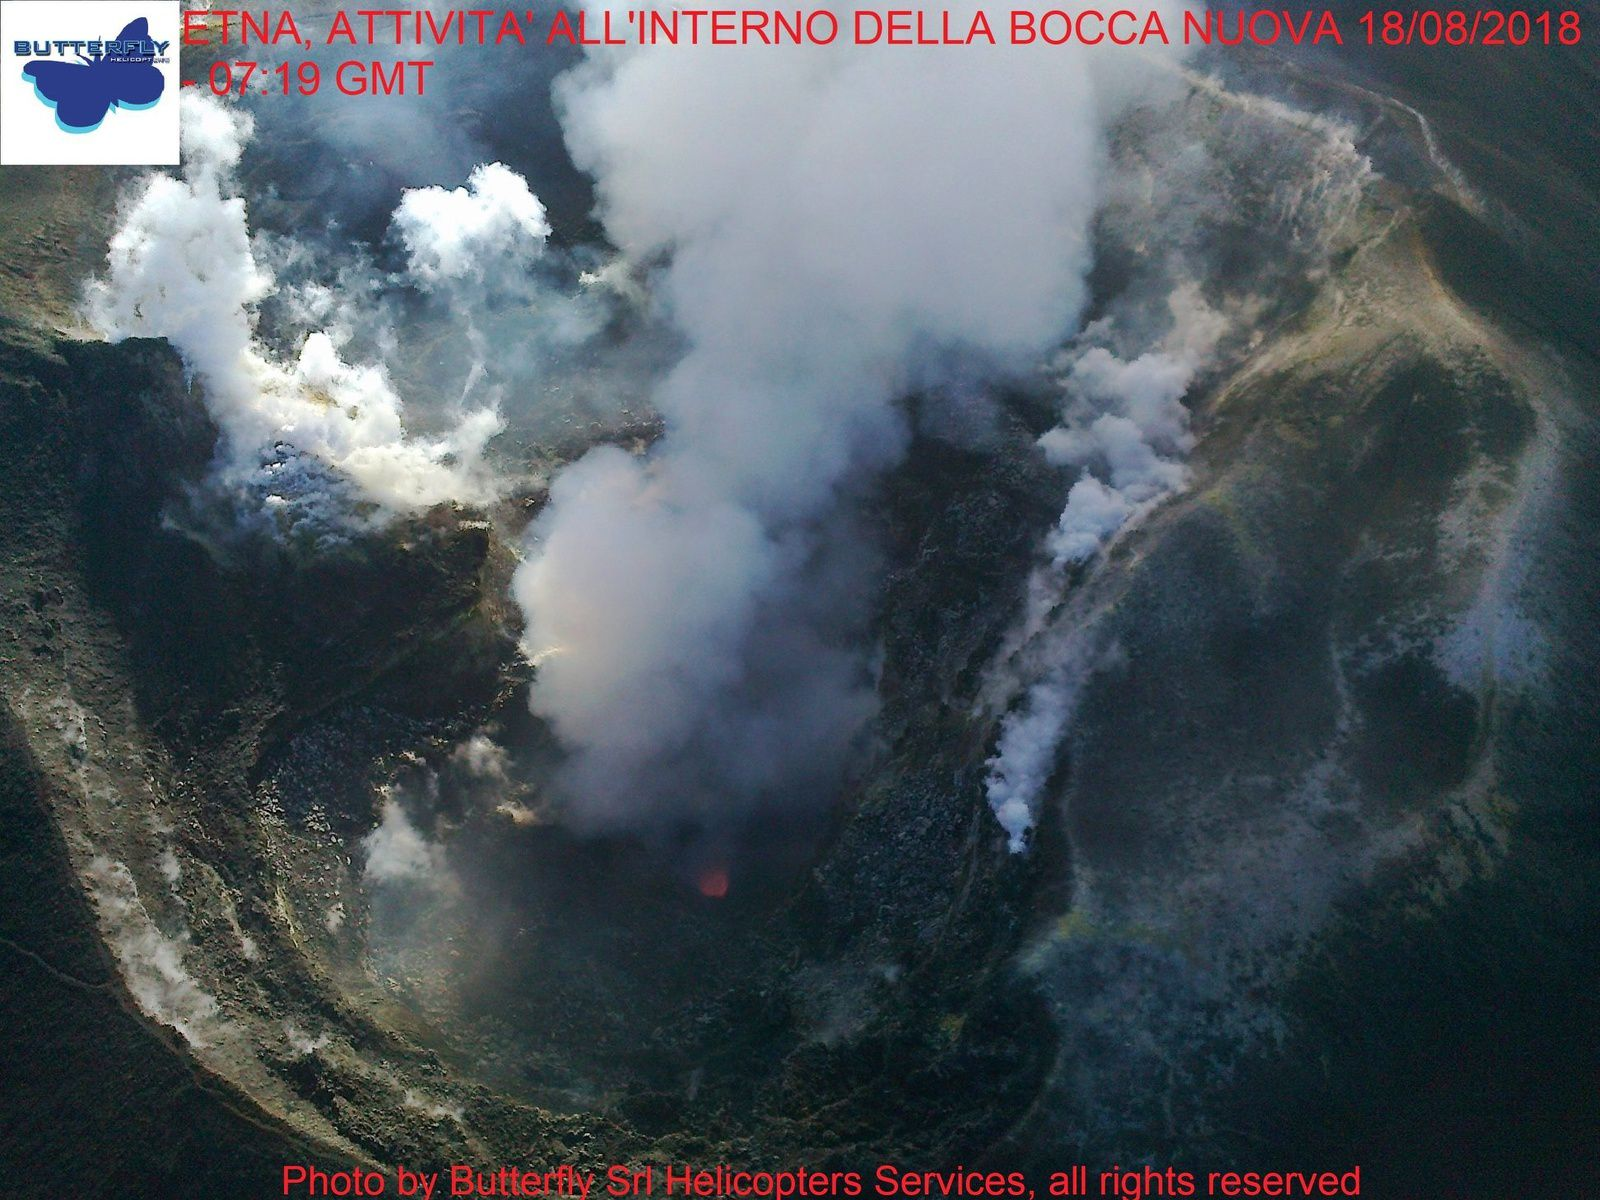 Etna - La Bocca Nuova on 18.08.2018 at 7:19 GMT - photo Joseph Nasi / Butterfly Helicopters